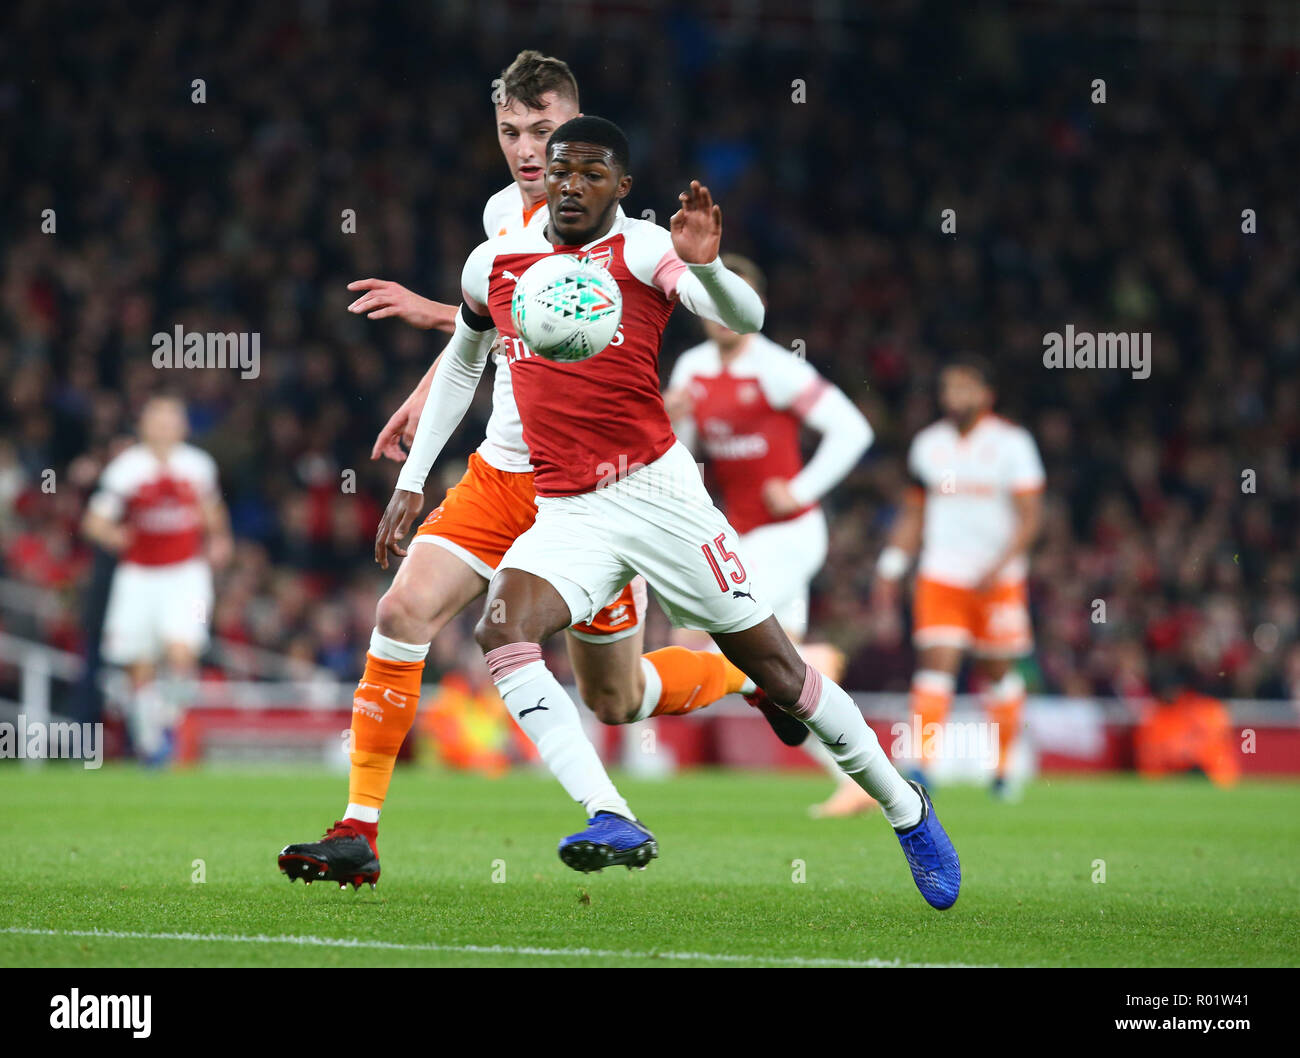 London, UK, 31 October, 2018 Ainsley Maitland-Niles of Arsenal holds ofBlackpool's Paudie O'Connor during EFL Cup Fourth Round  between Arsenal and Blackpool at Emirates stadium , London, England on 31 Oct 2018.  Credit Action Foto Sport Credit: Action Foto Sport/Alamy Live News - Stock Image